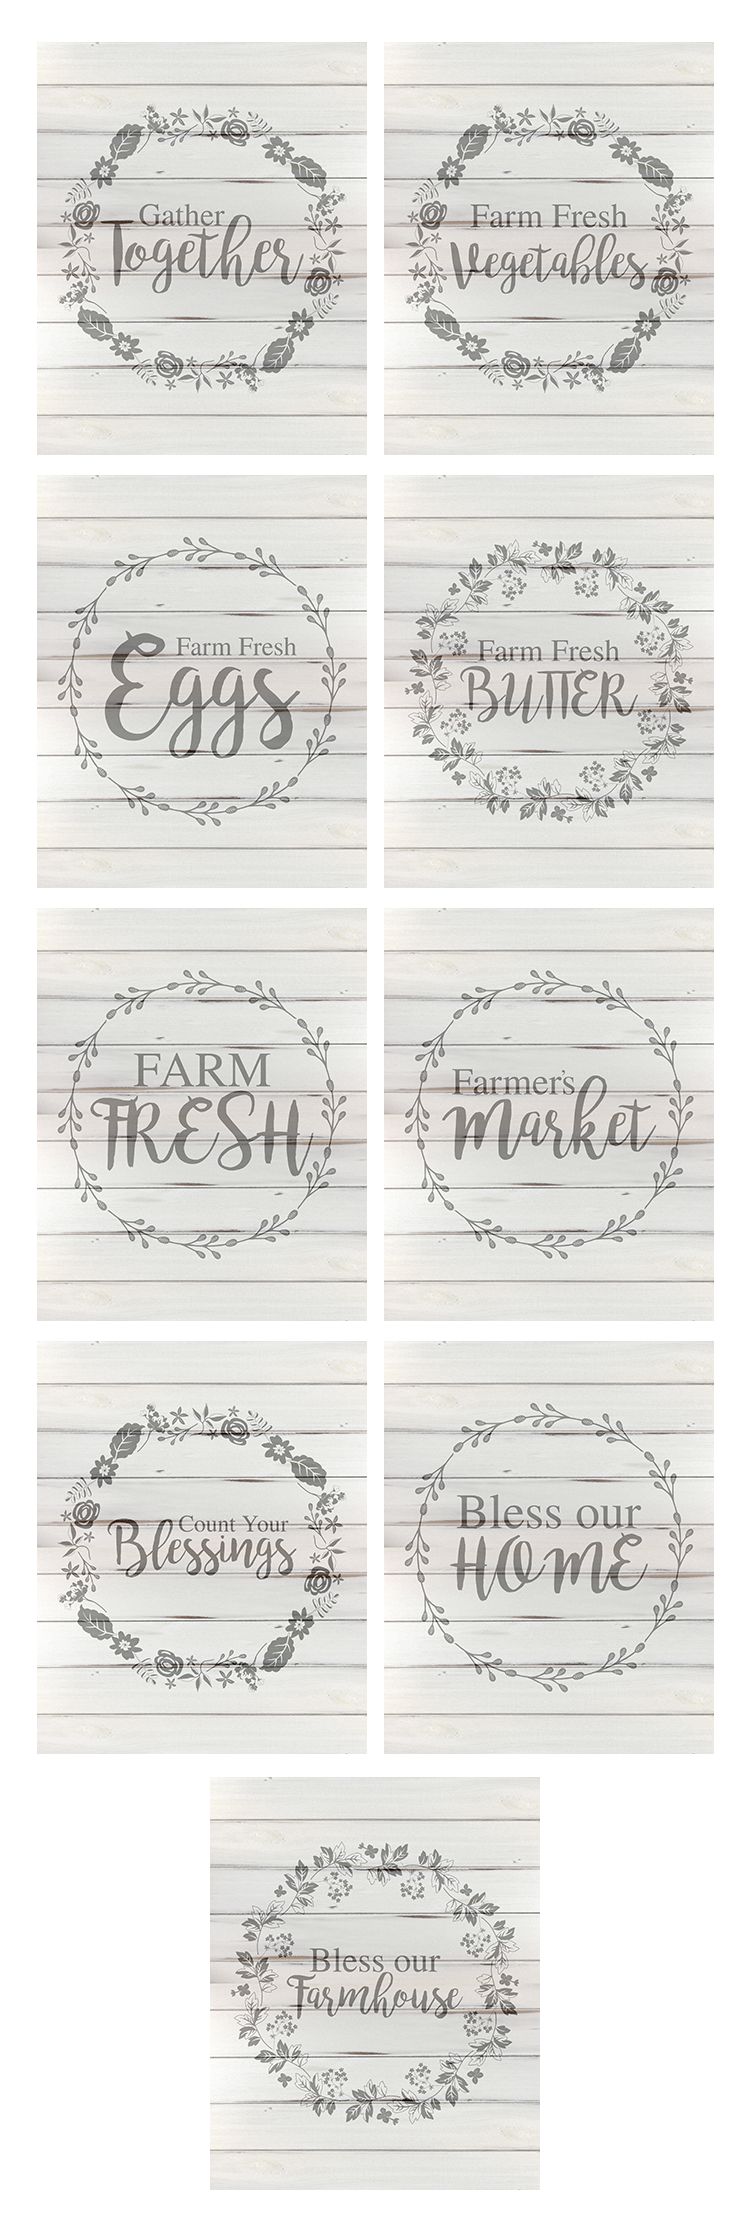 http://thecottagemarket.com/wp-content/uploads/2016/02/FarmhousePrintables-White-Preview.png